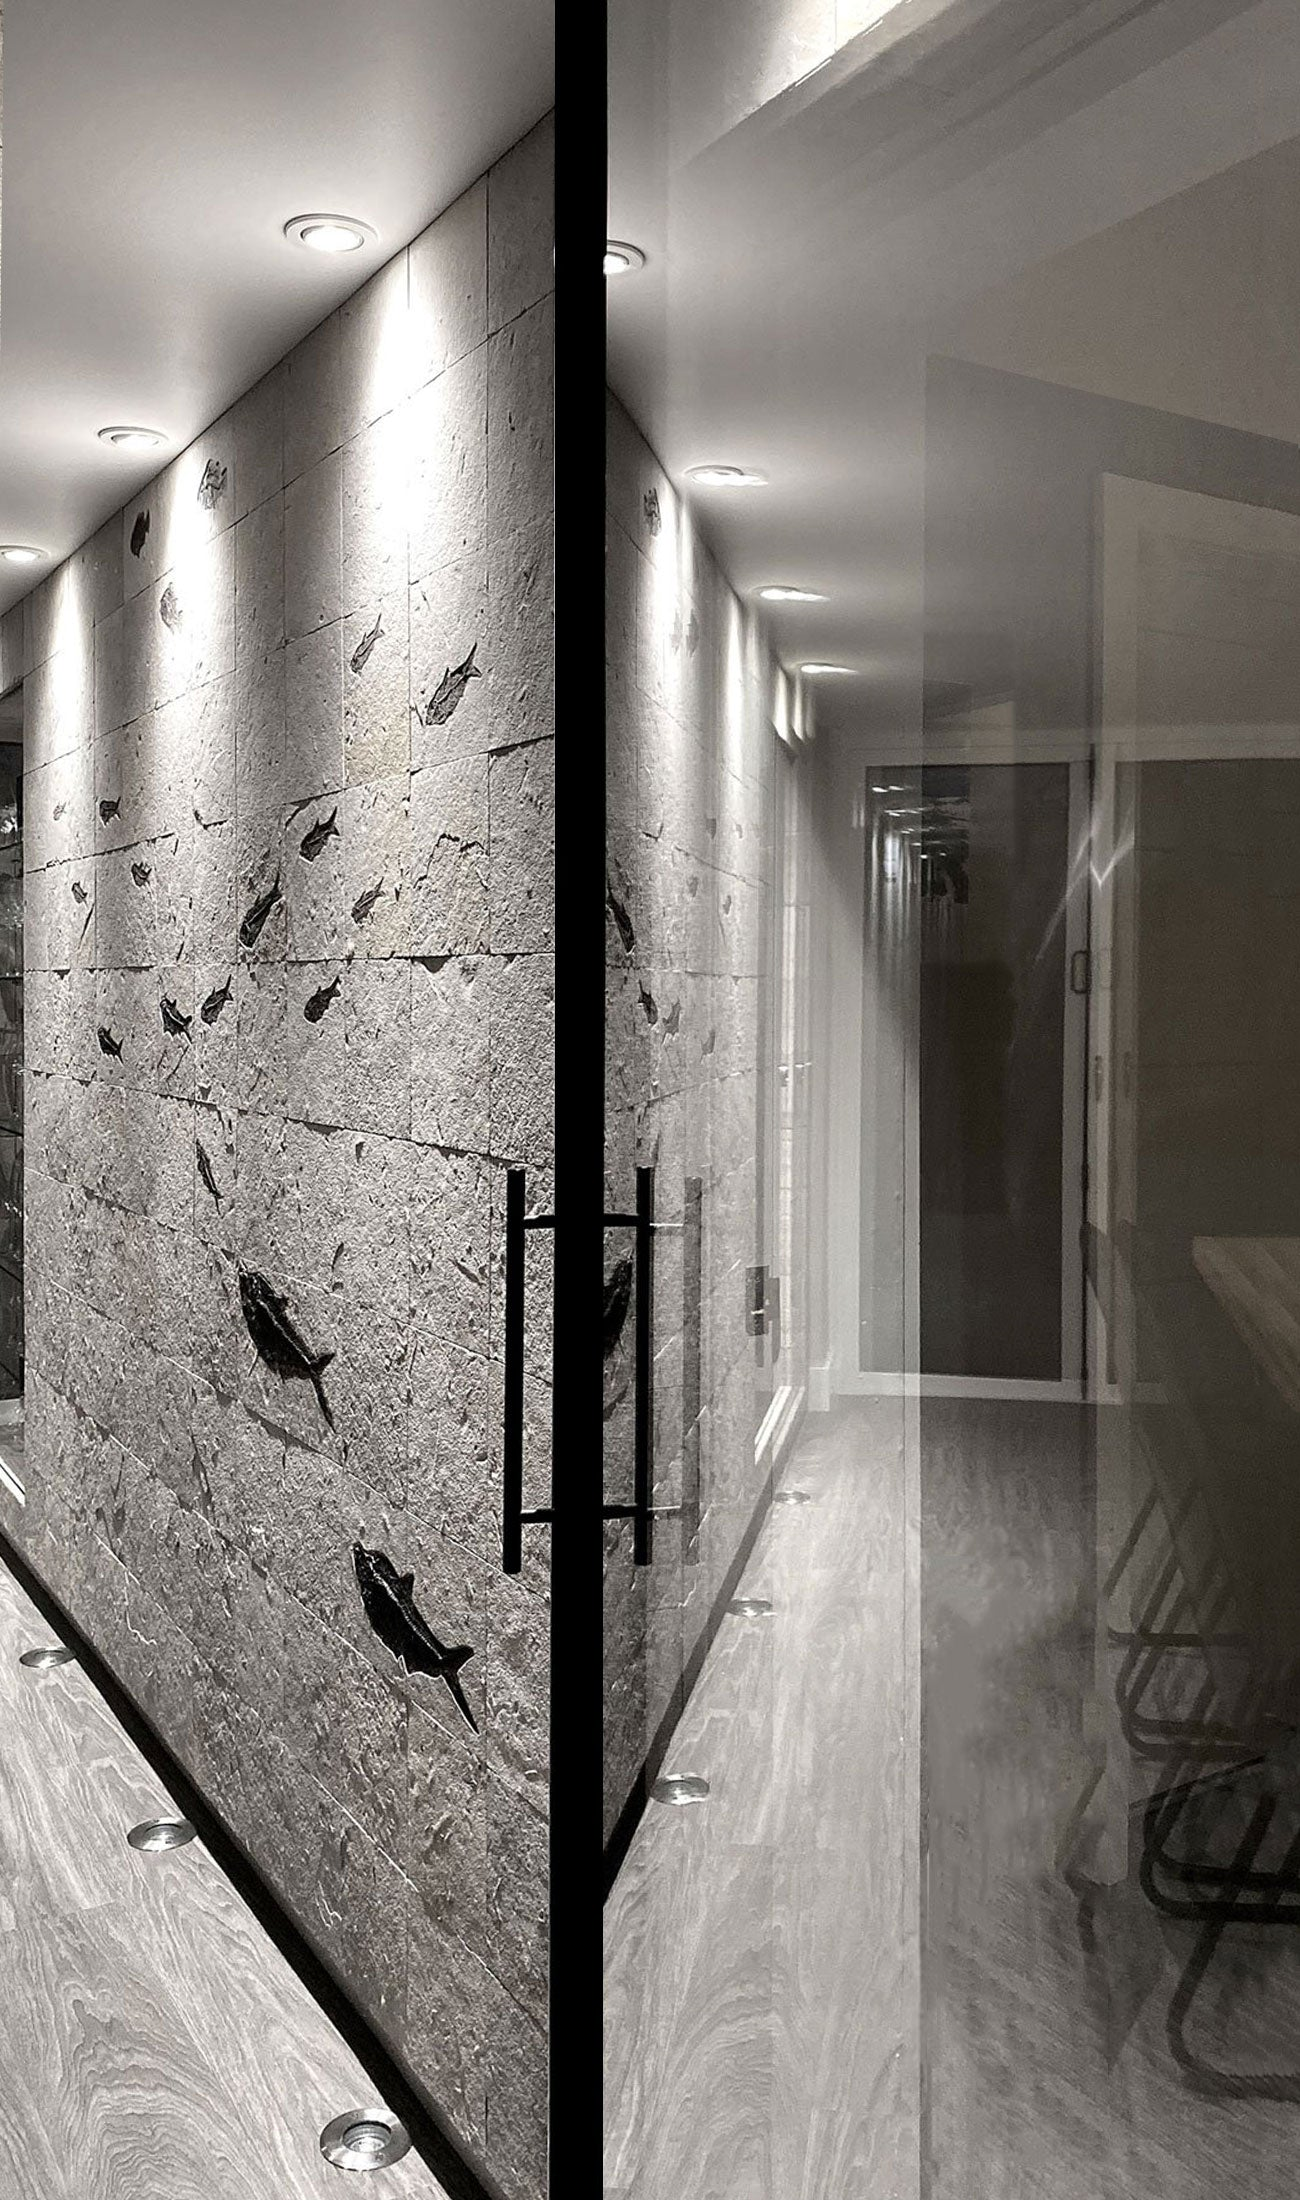 Quality fossil fish tile mosaic fossils for sale for luxury bespoke interior wall fossil designs by THE FOSSIL STORE